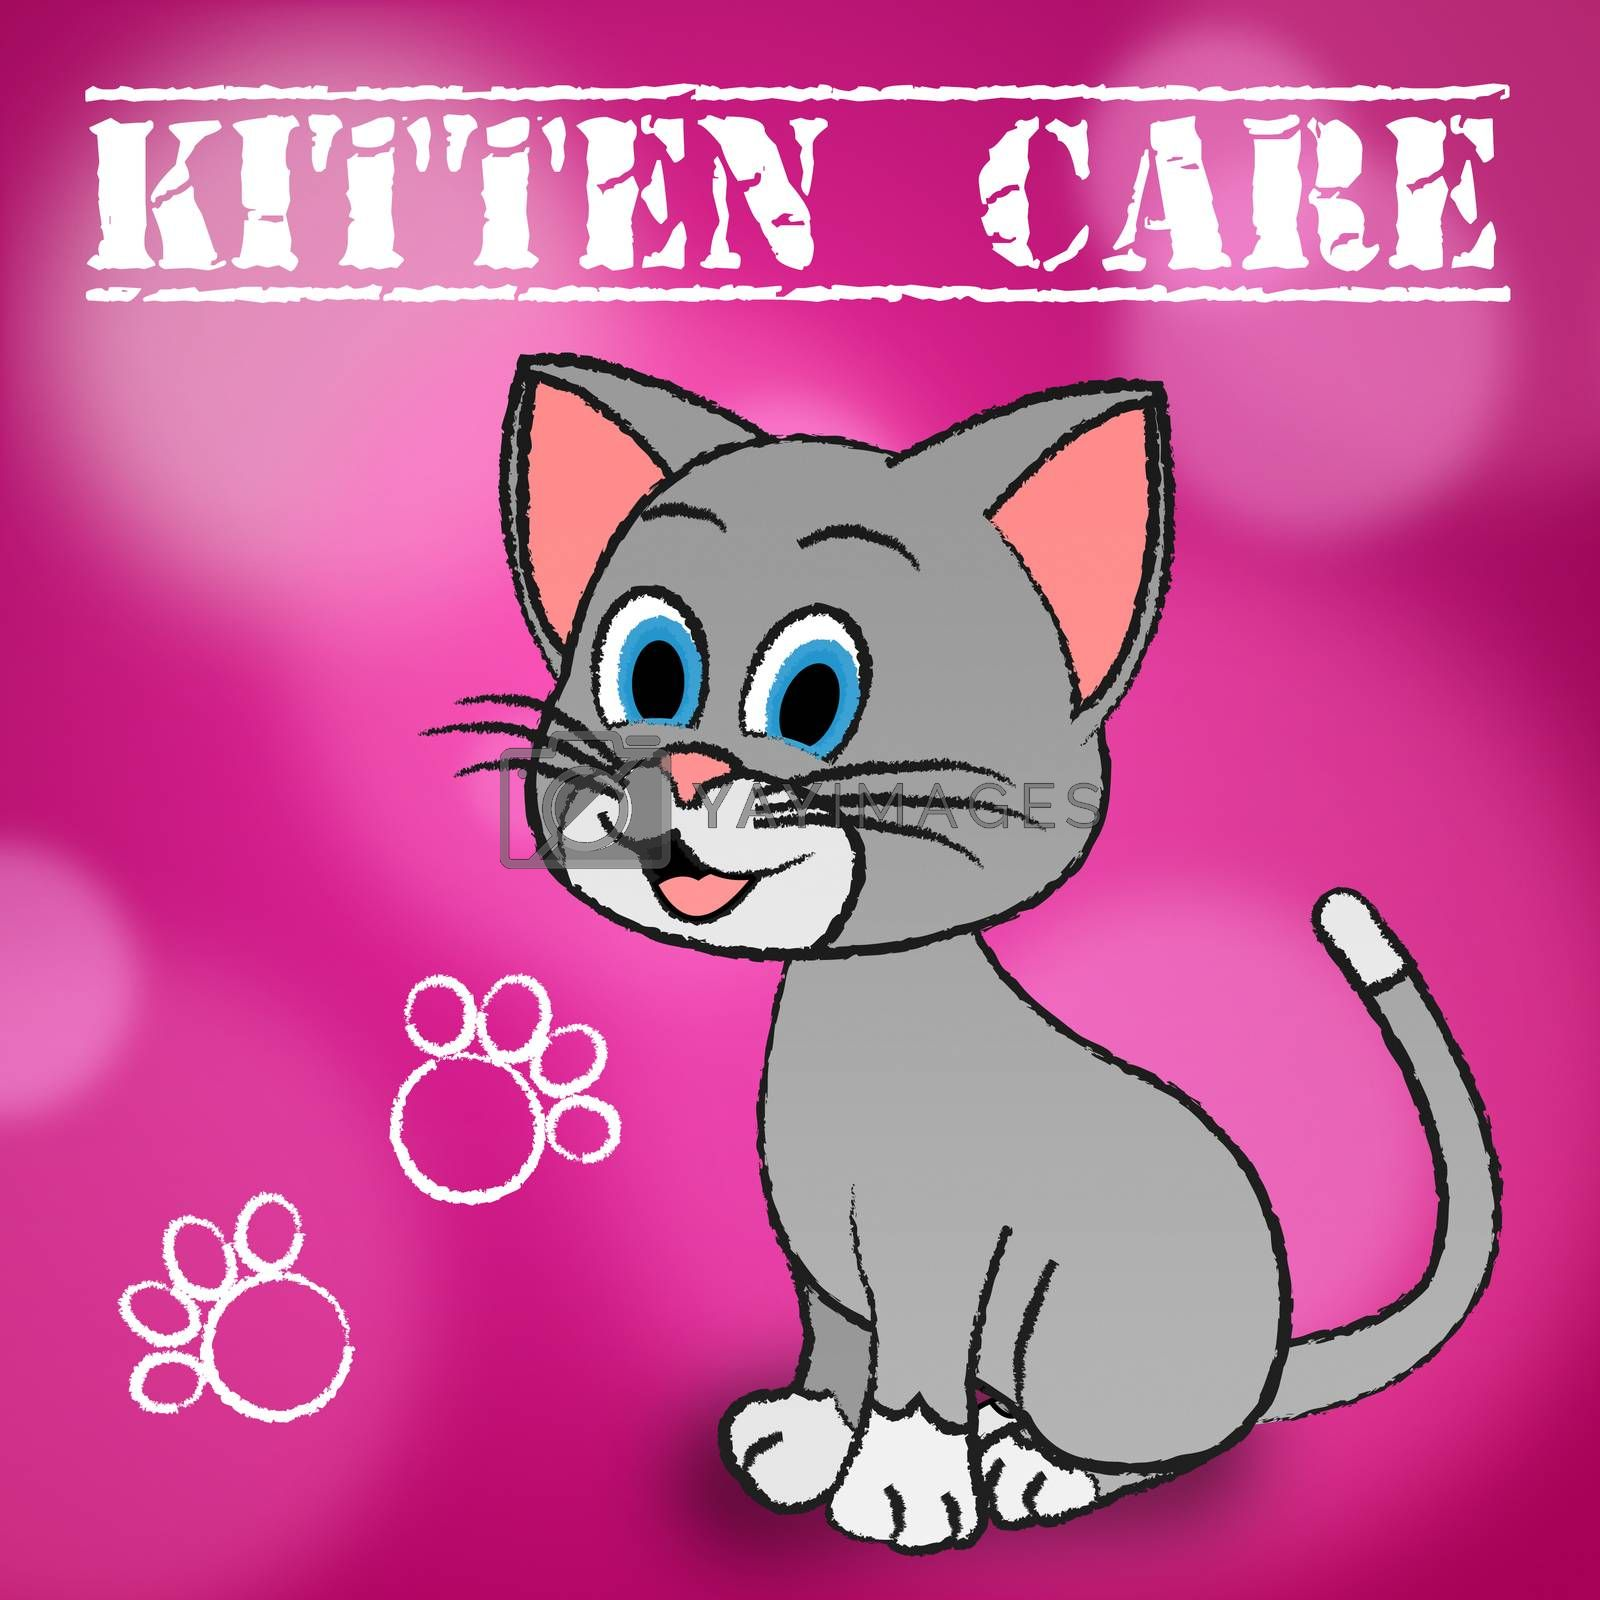 Kitten Care Representing Look After And Caring For Cats